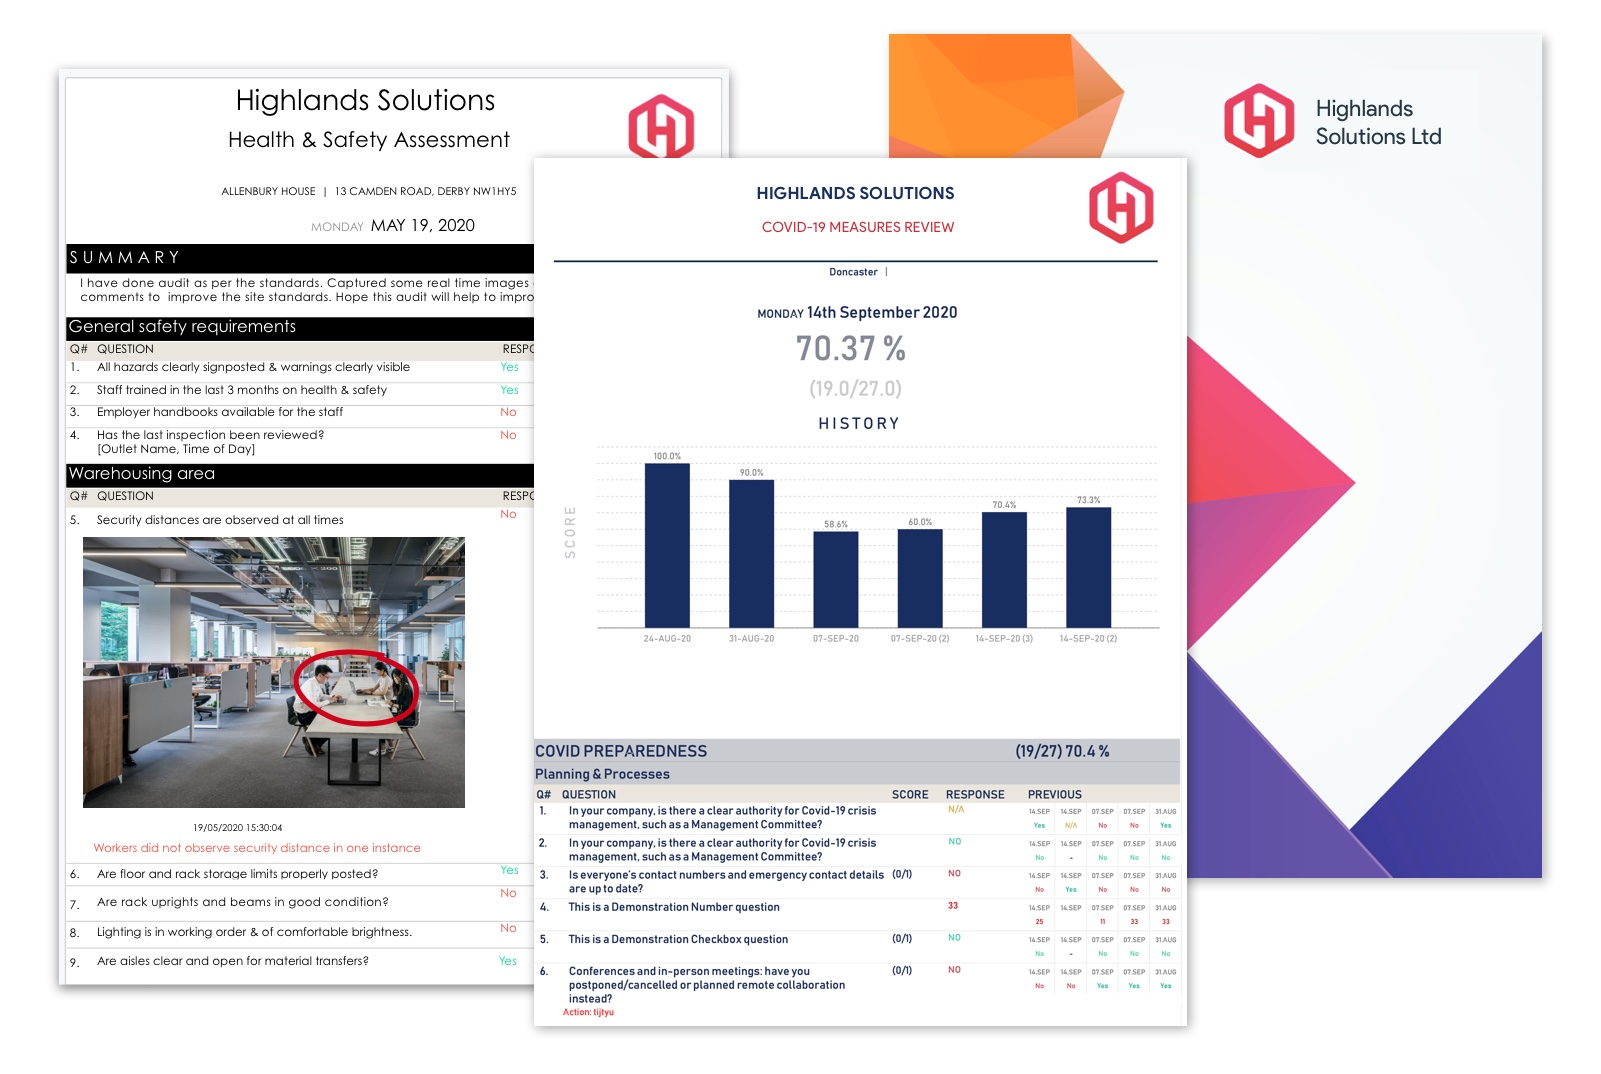 Get real-time insights from smart dashboards and instant inspection reports - professional and insighful